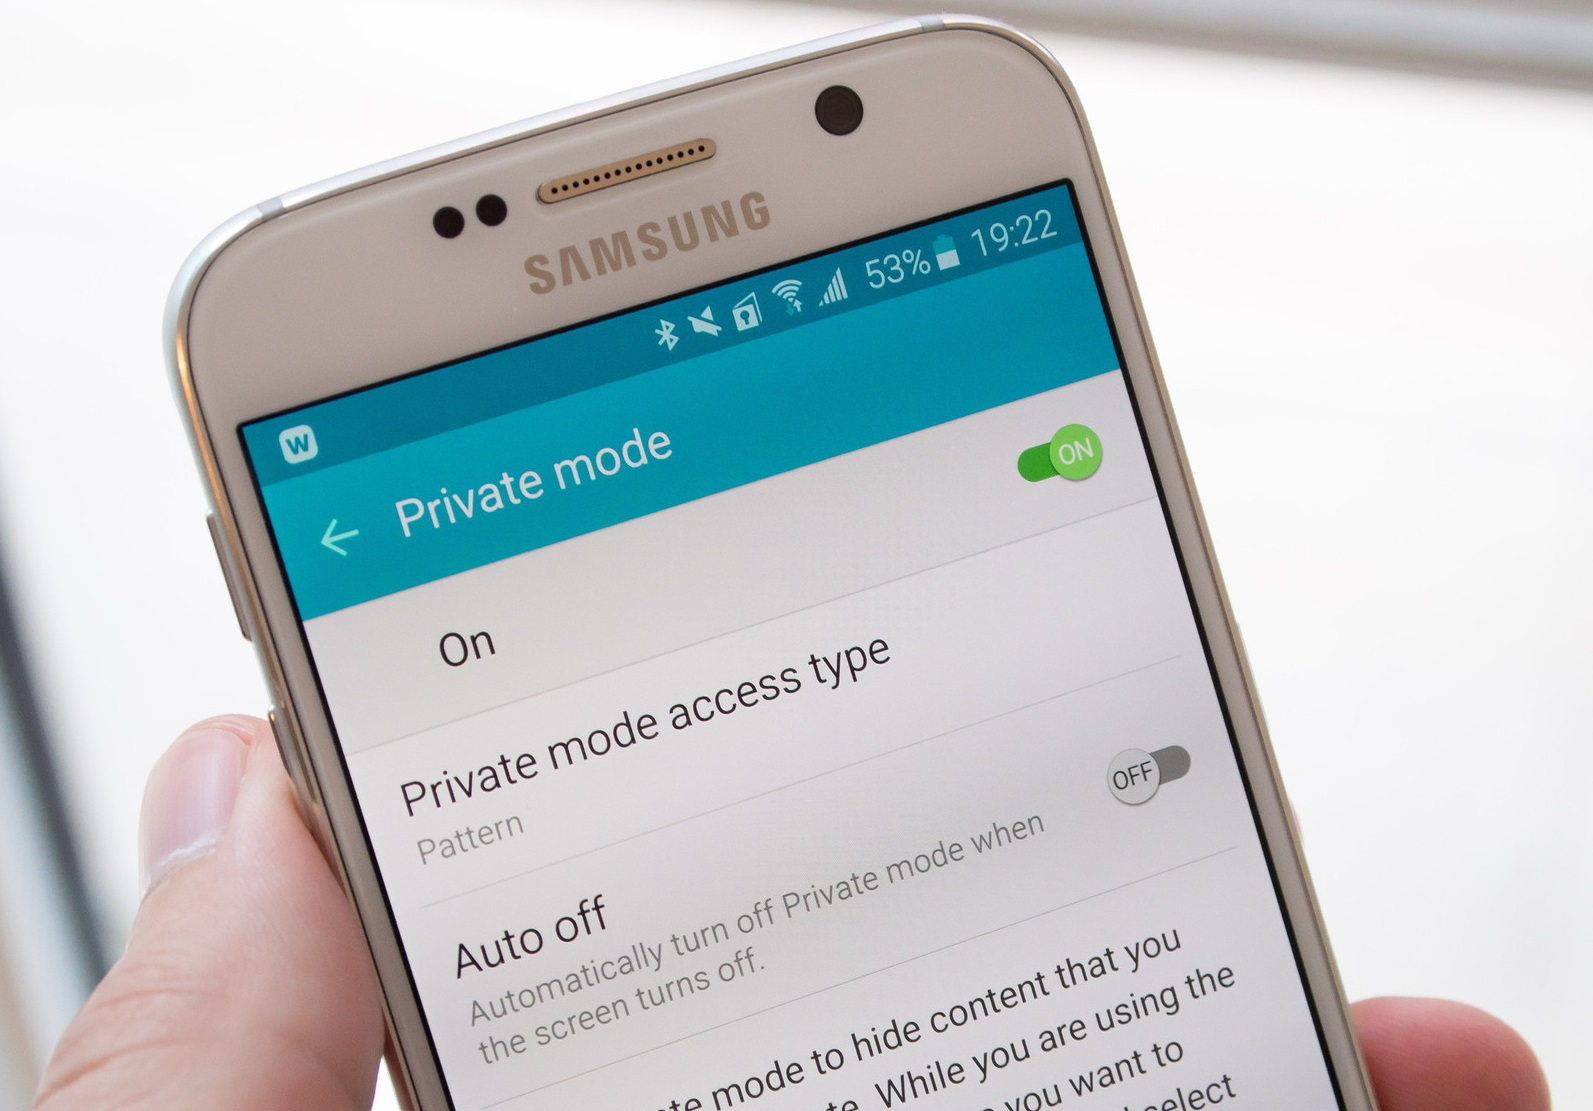 Samsung galaxy s6 tips to use private mode settings